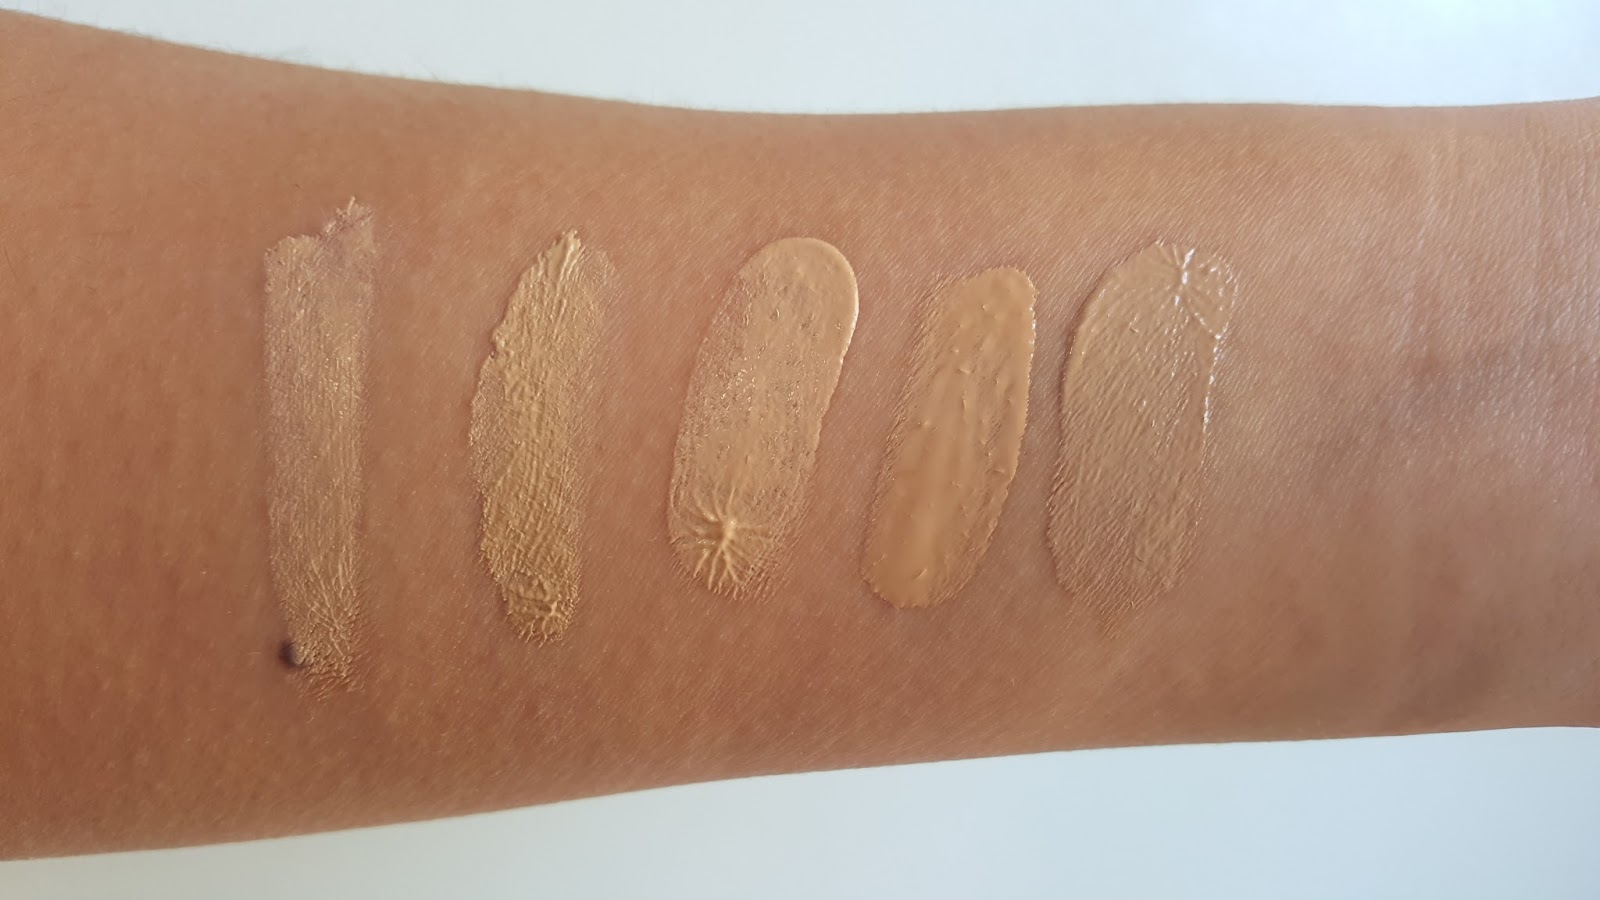 Illusion Tinted Moisturizer by Hourglass #7